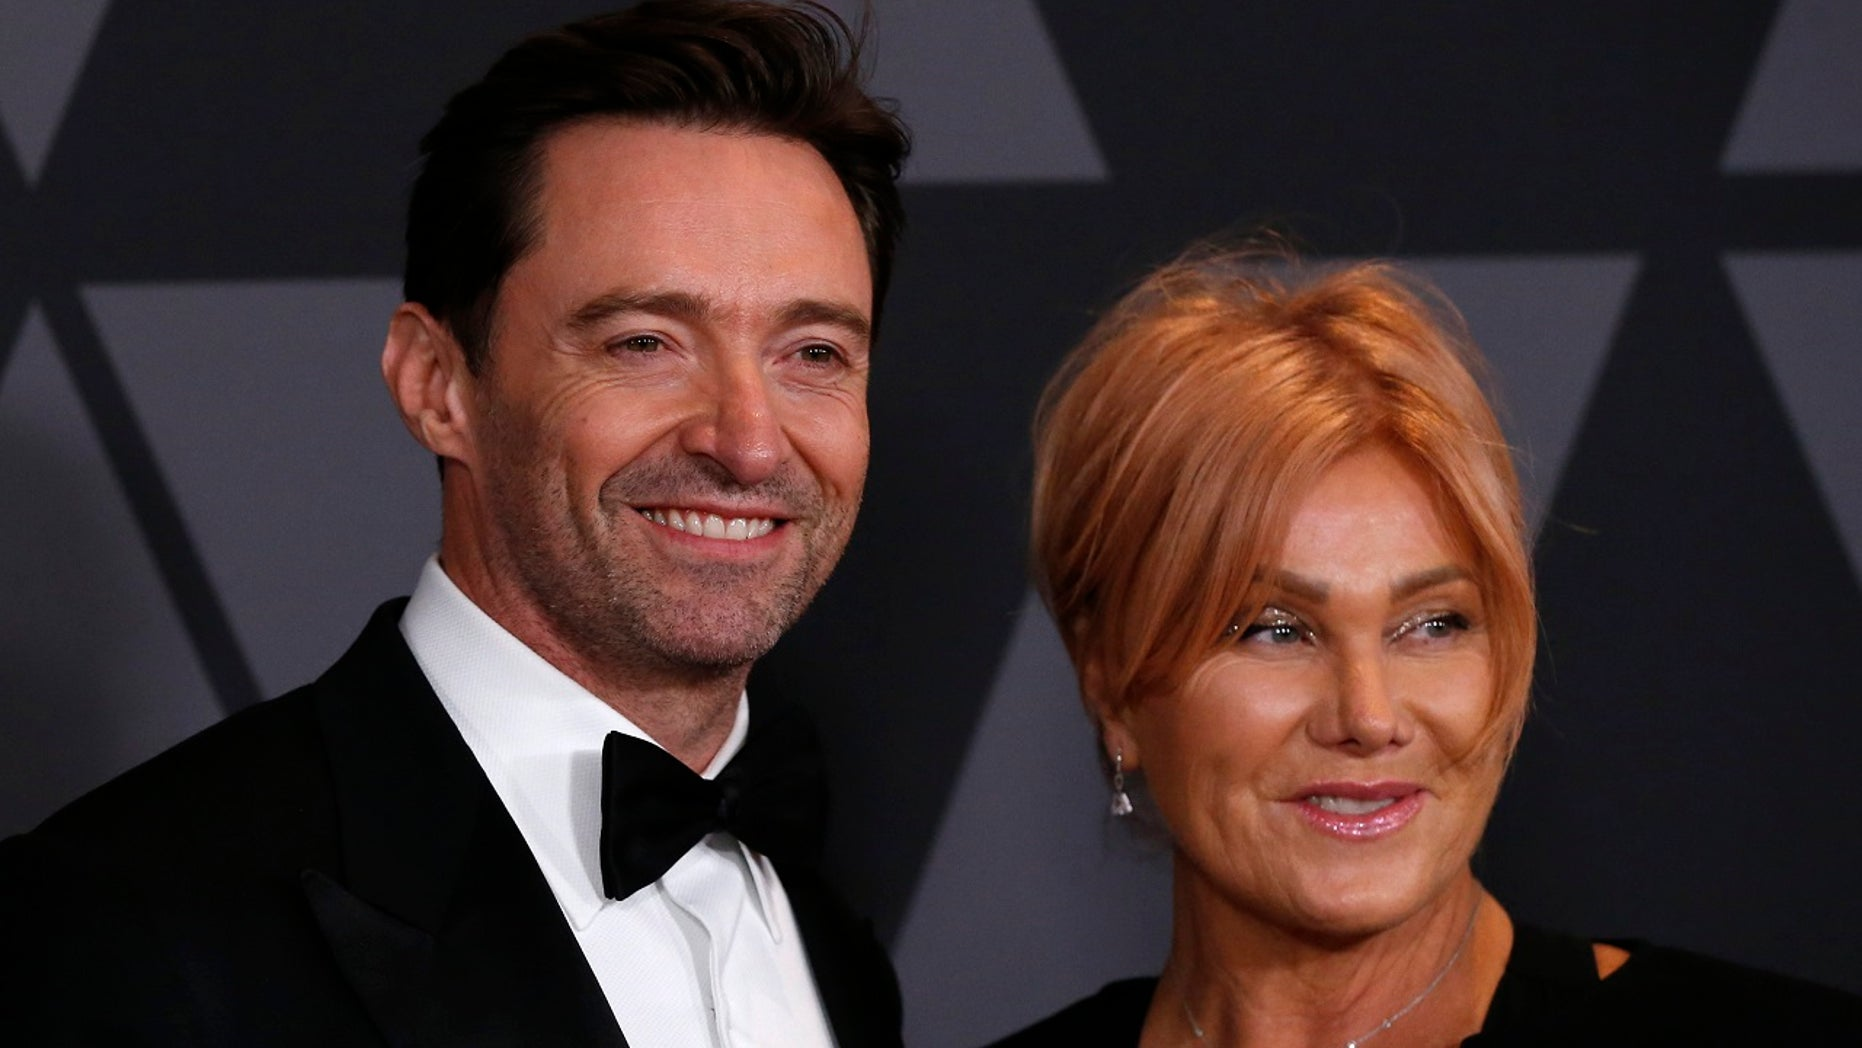 9TH Governors Awards – Arrivals – Los Angeles, California, U.S., 11/11/2017 - Actors and husband and wife Hugh Jackman and Deborra-lee Furness. REUTERS/Mario Anzuoni - HP1EDBC0C5WAJ